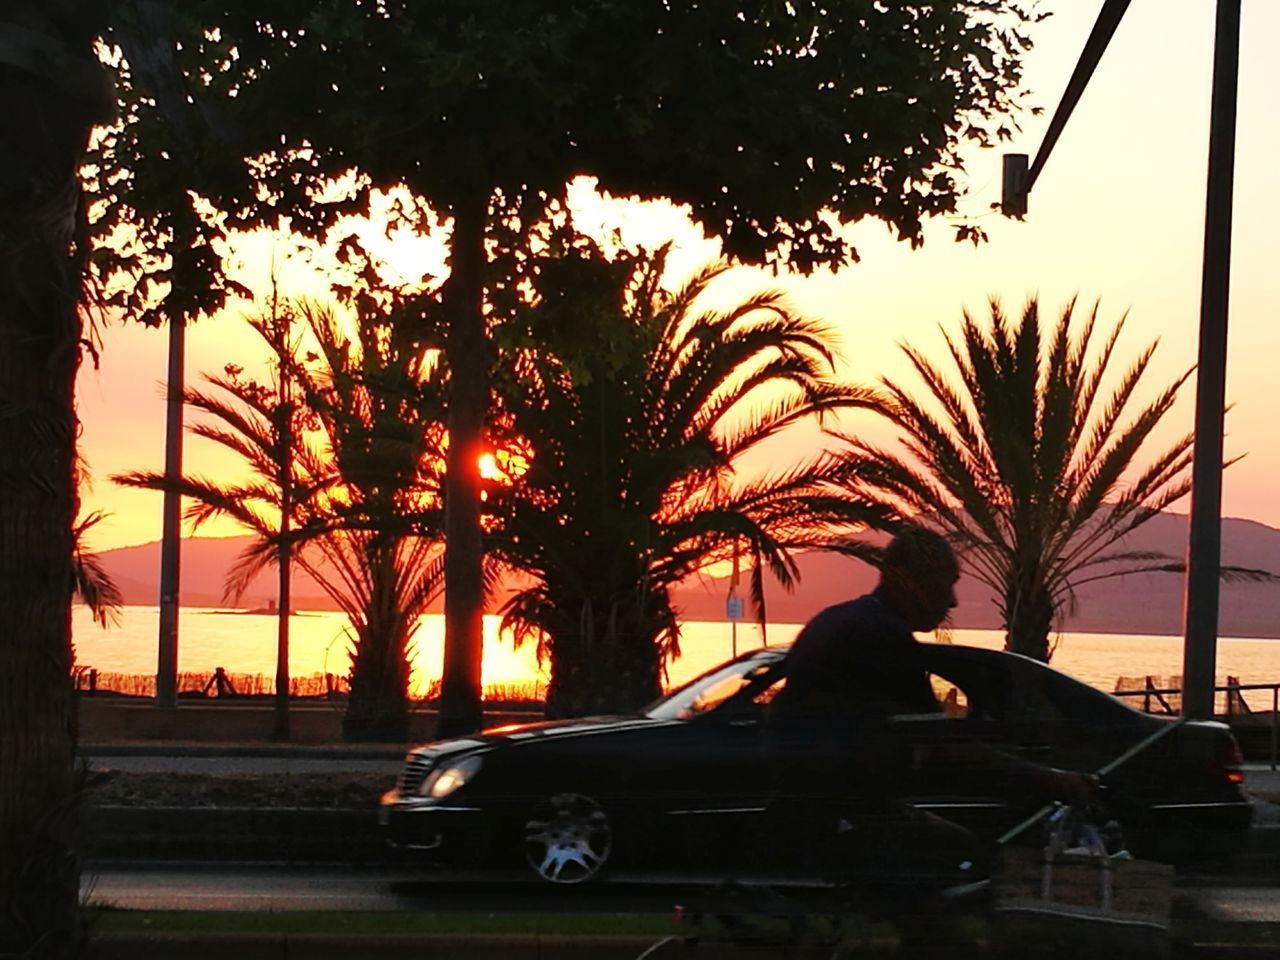 sunset, car, tree, palm tree, transportation, silhouette, outdoors, land vehicle, real people, one person, nature, sky, beauty in nature, day, people